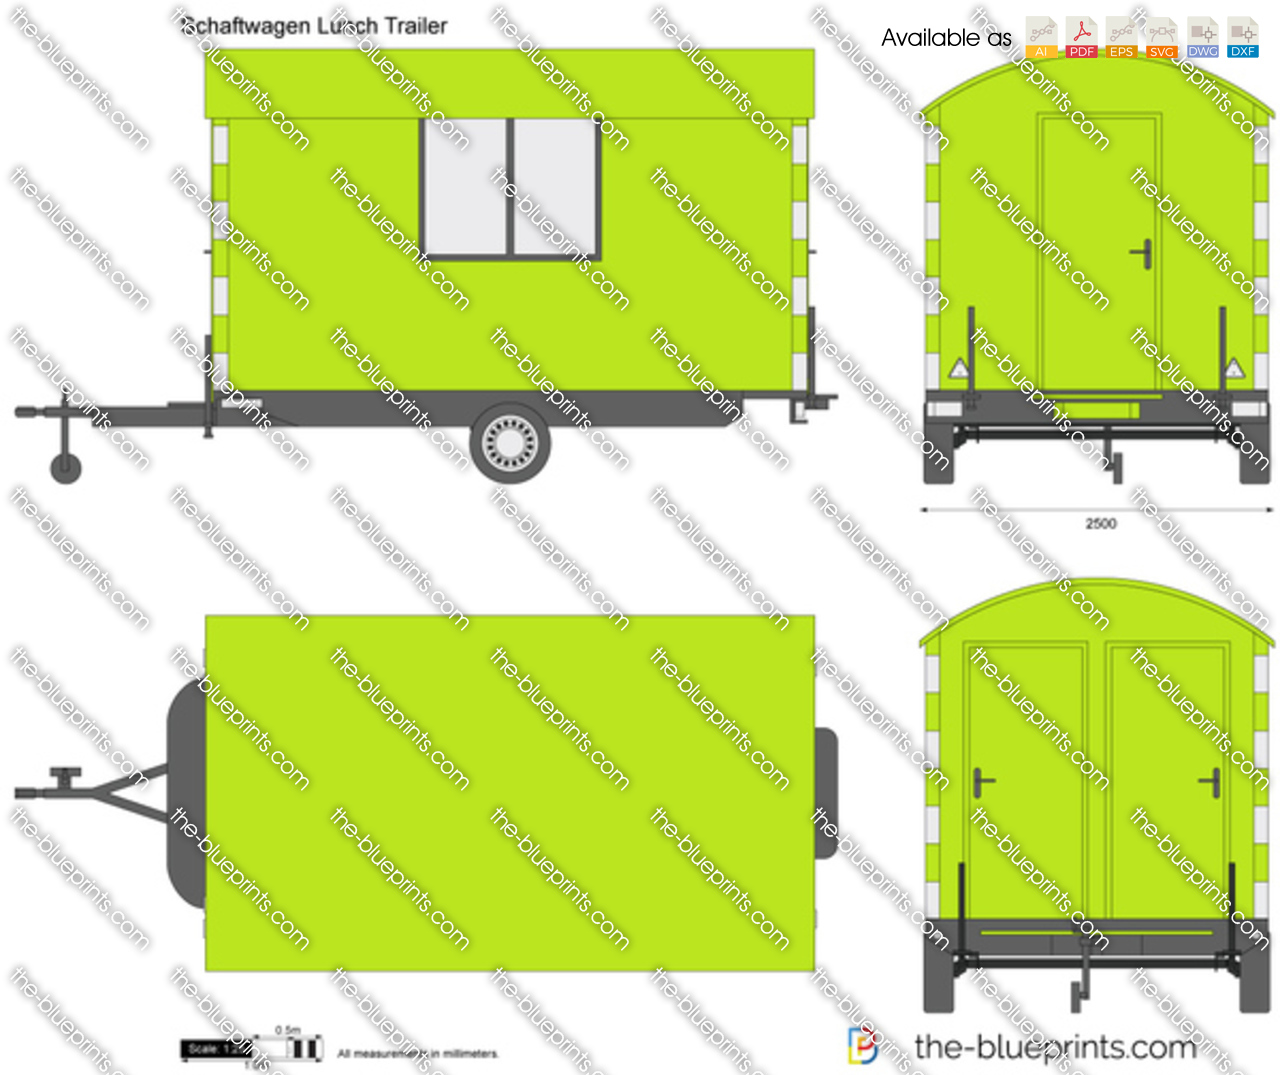 Schaftwagen Lunch Trailer